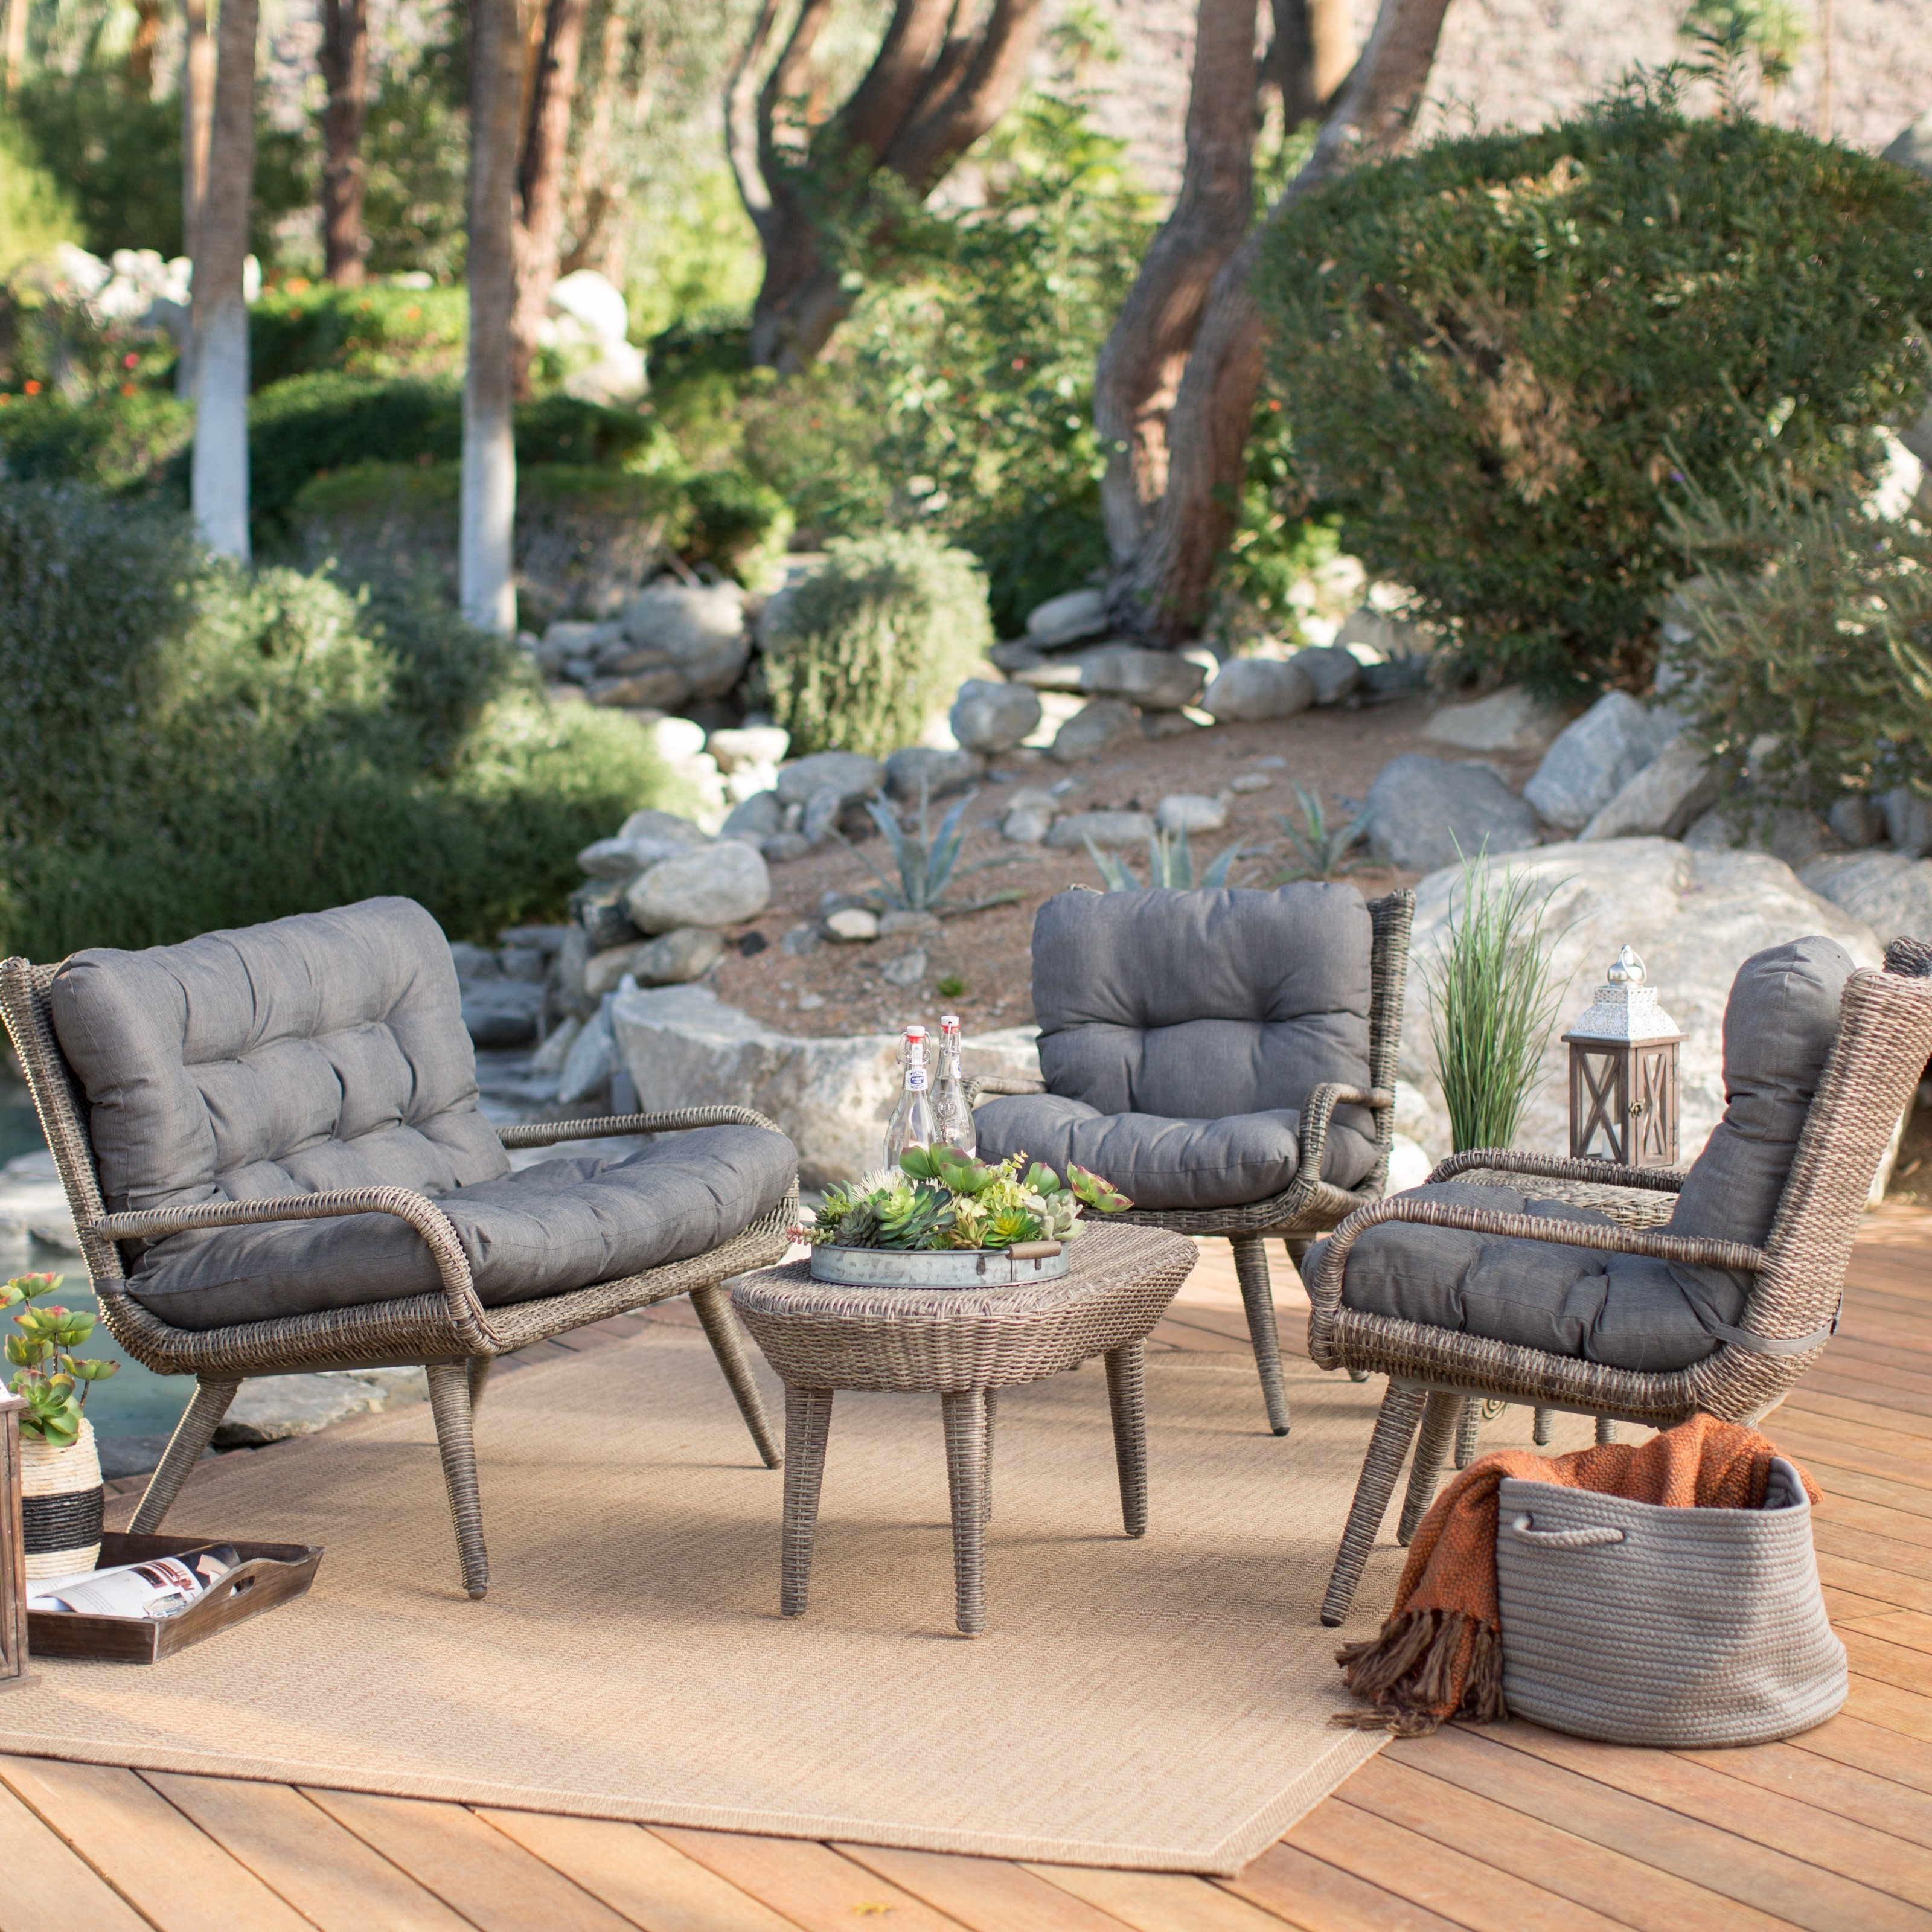 Grey Patio Conversation Sets Regarding Widely Used Furniture: Exciting Outdoor Furniture With Gray Cushions On Beige (View 14 of 20)